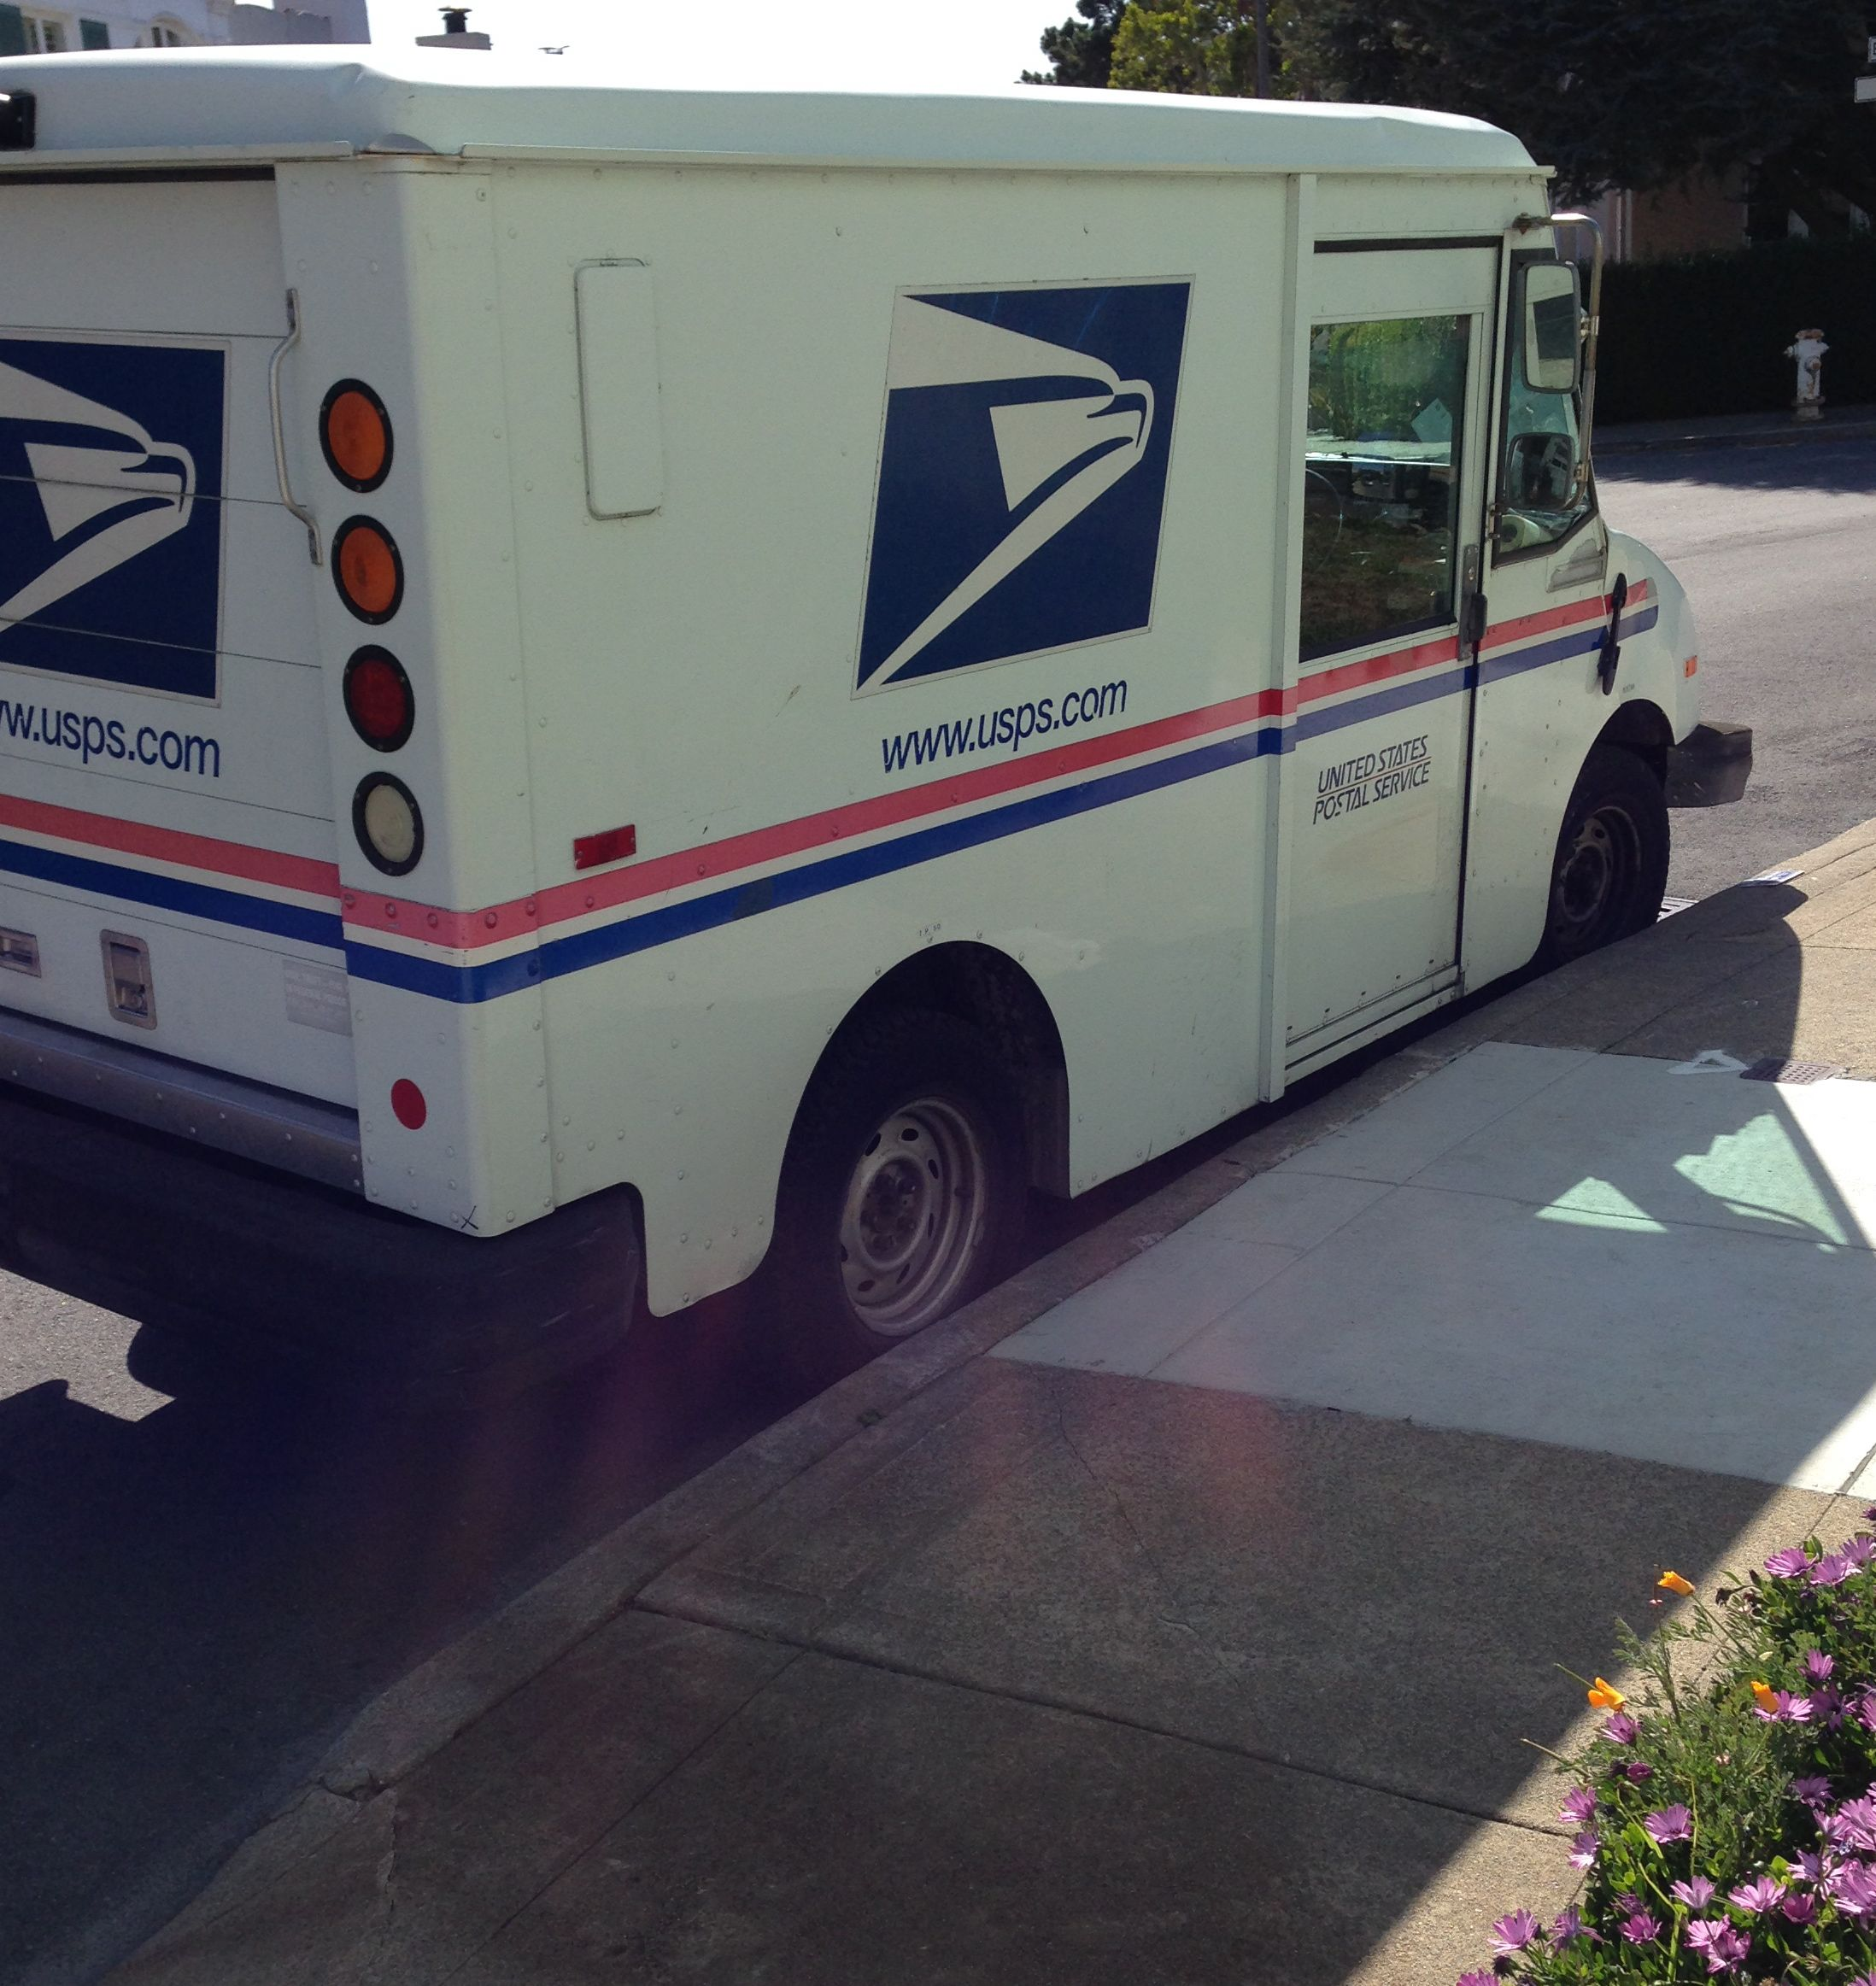 Mail Trucks: Next Generation